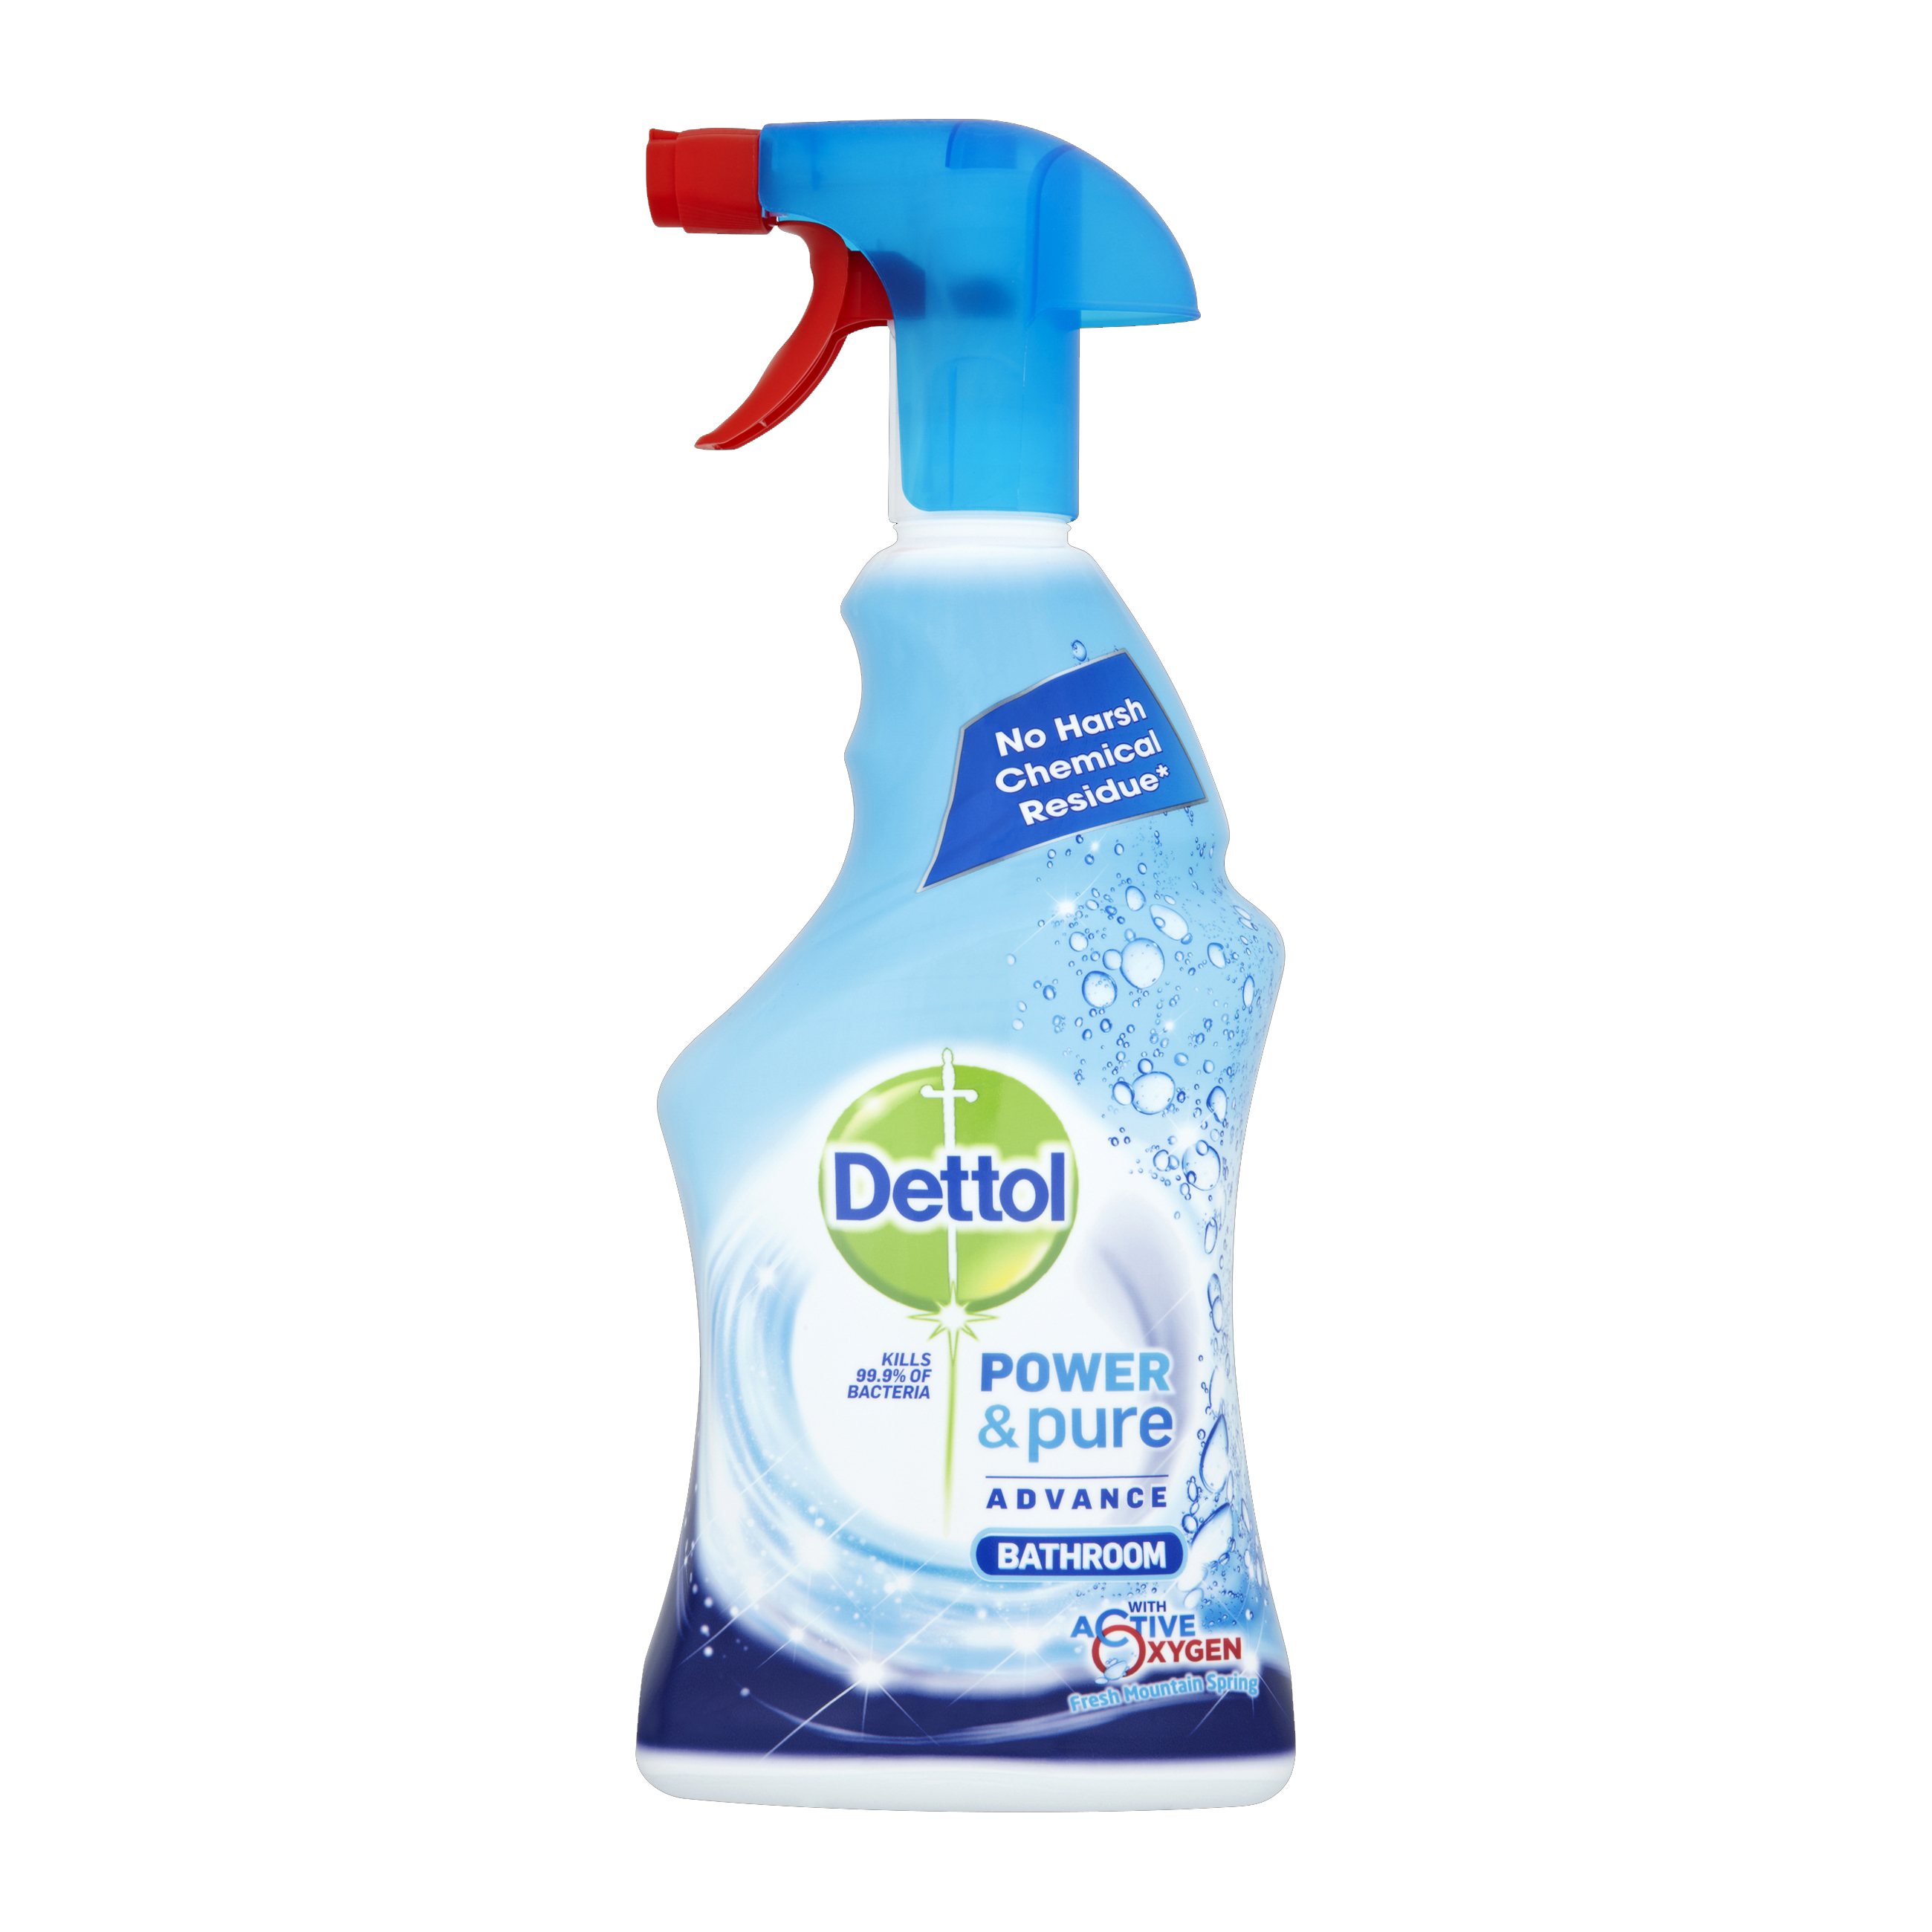 Dettol Power & Pure Bathroom Cleaner Spray 750ml Ref RB78878 [3 for 2] Oct 2019